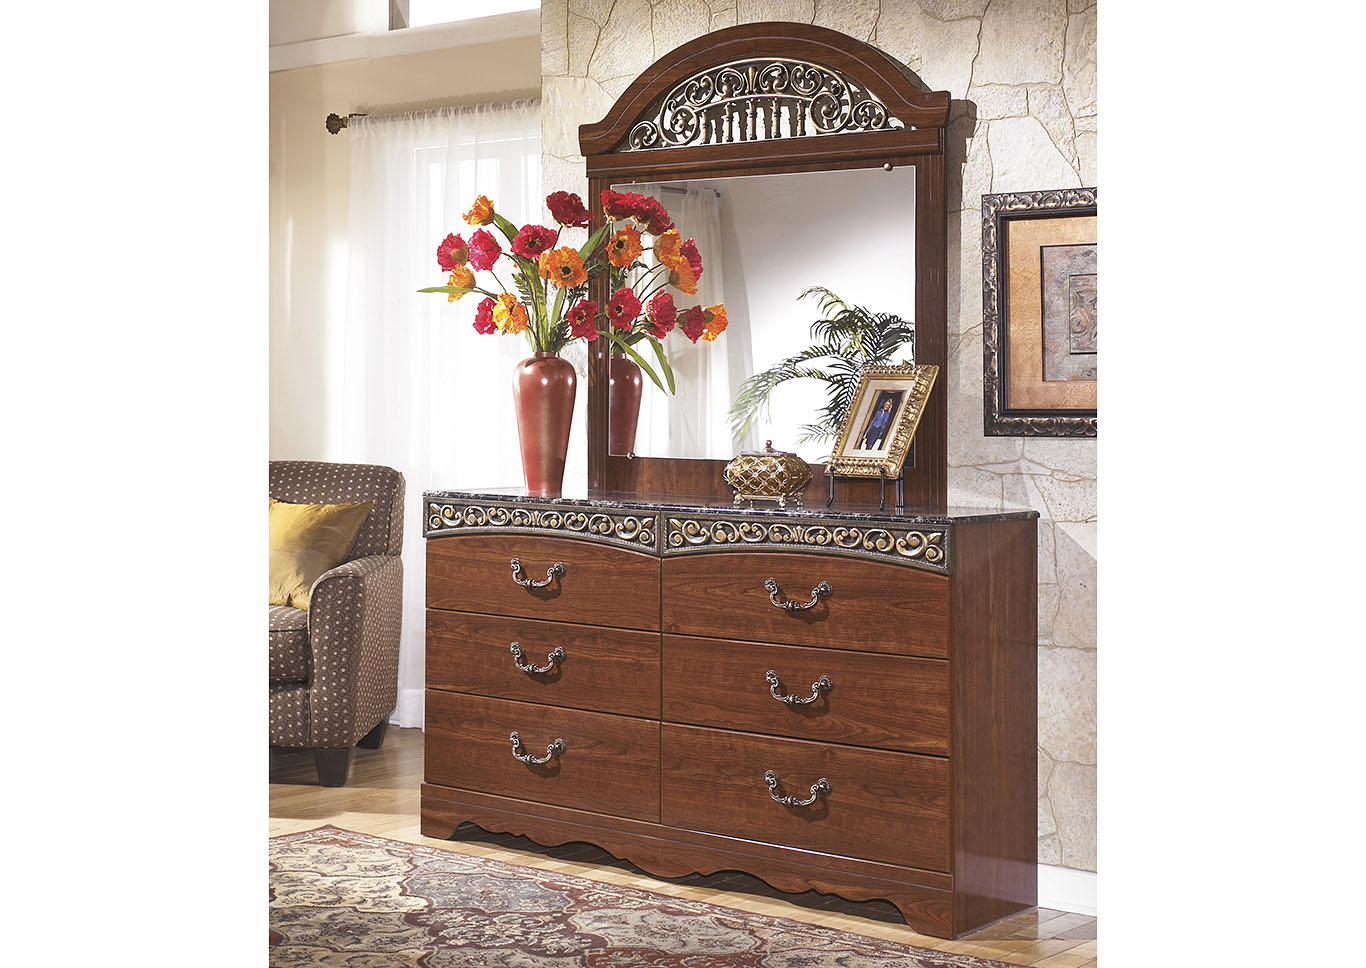 Fairbrooks Estate Dresser,Signature Design by Ashley